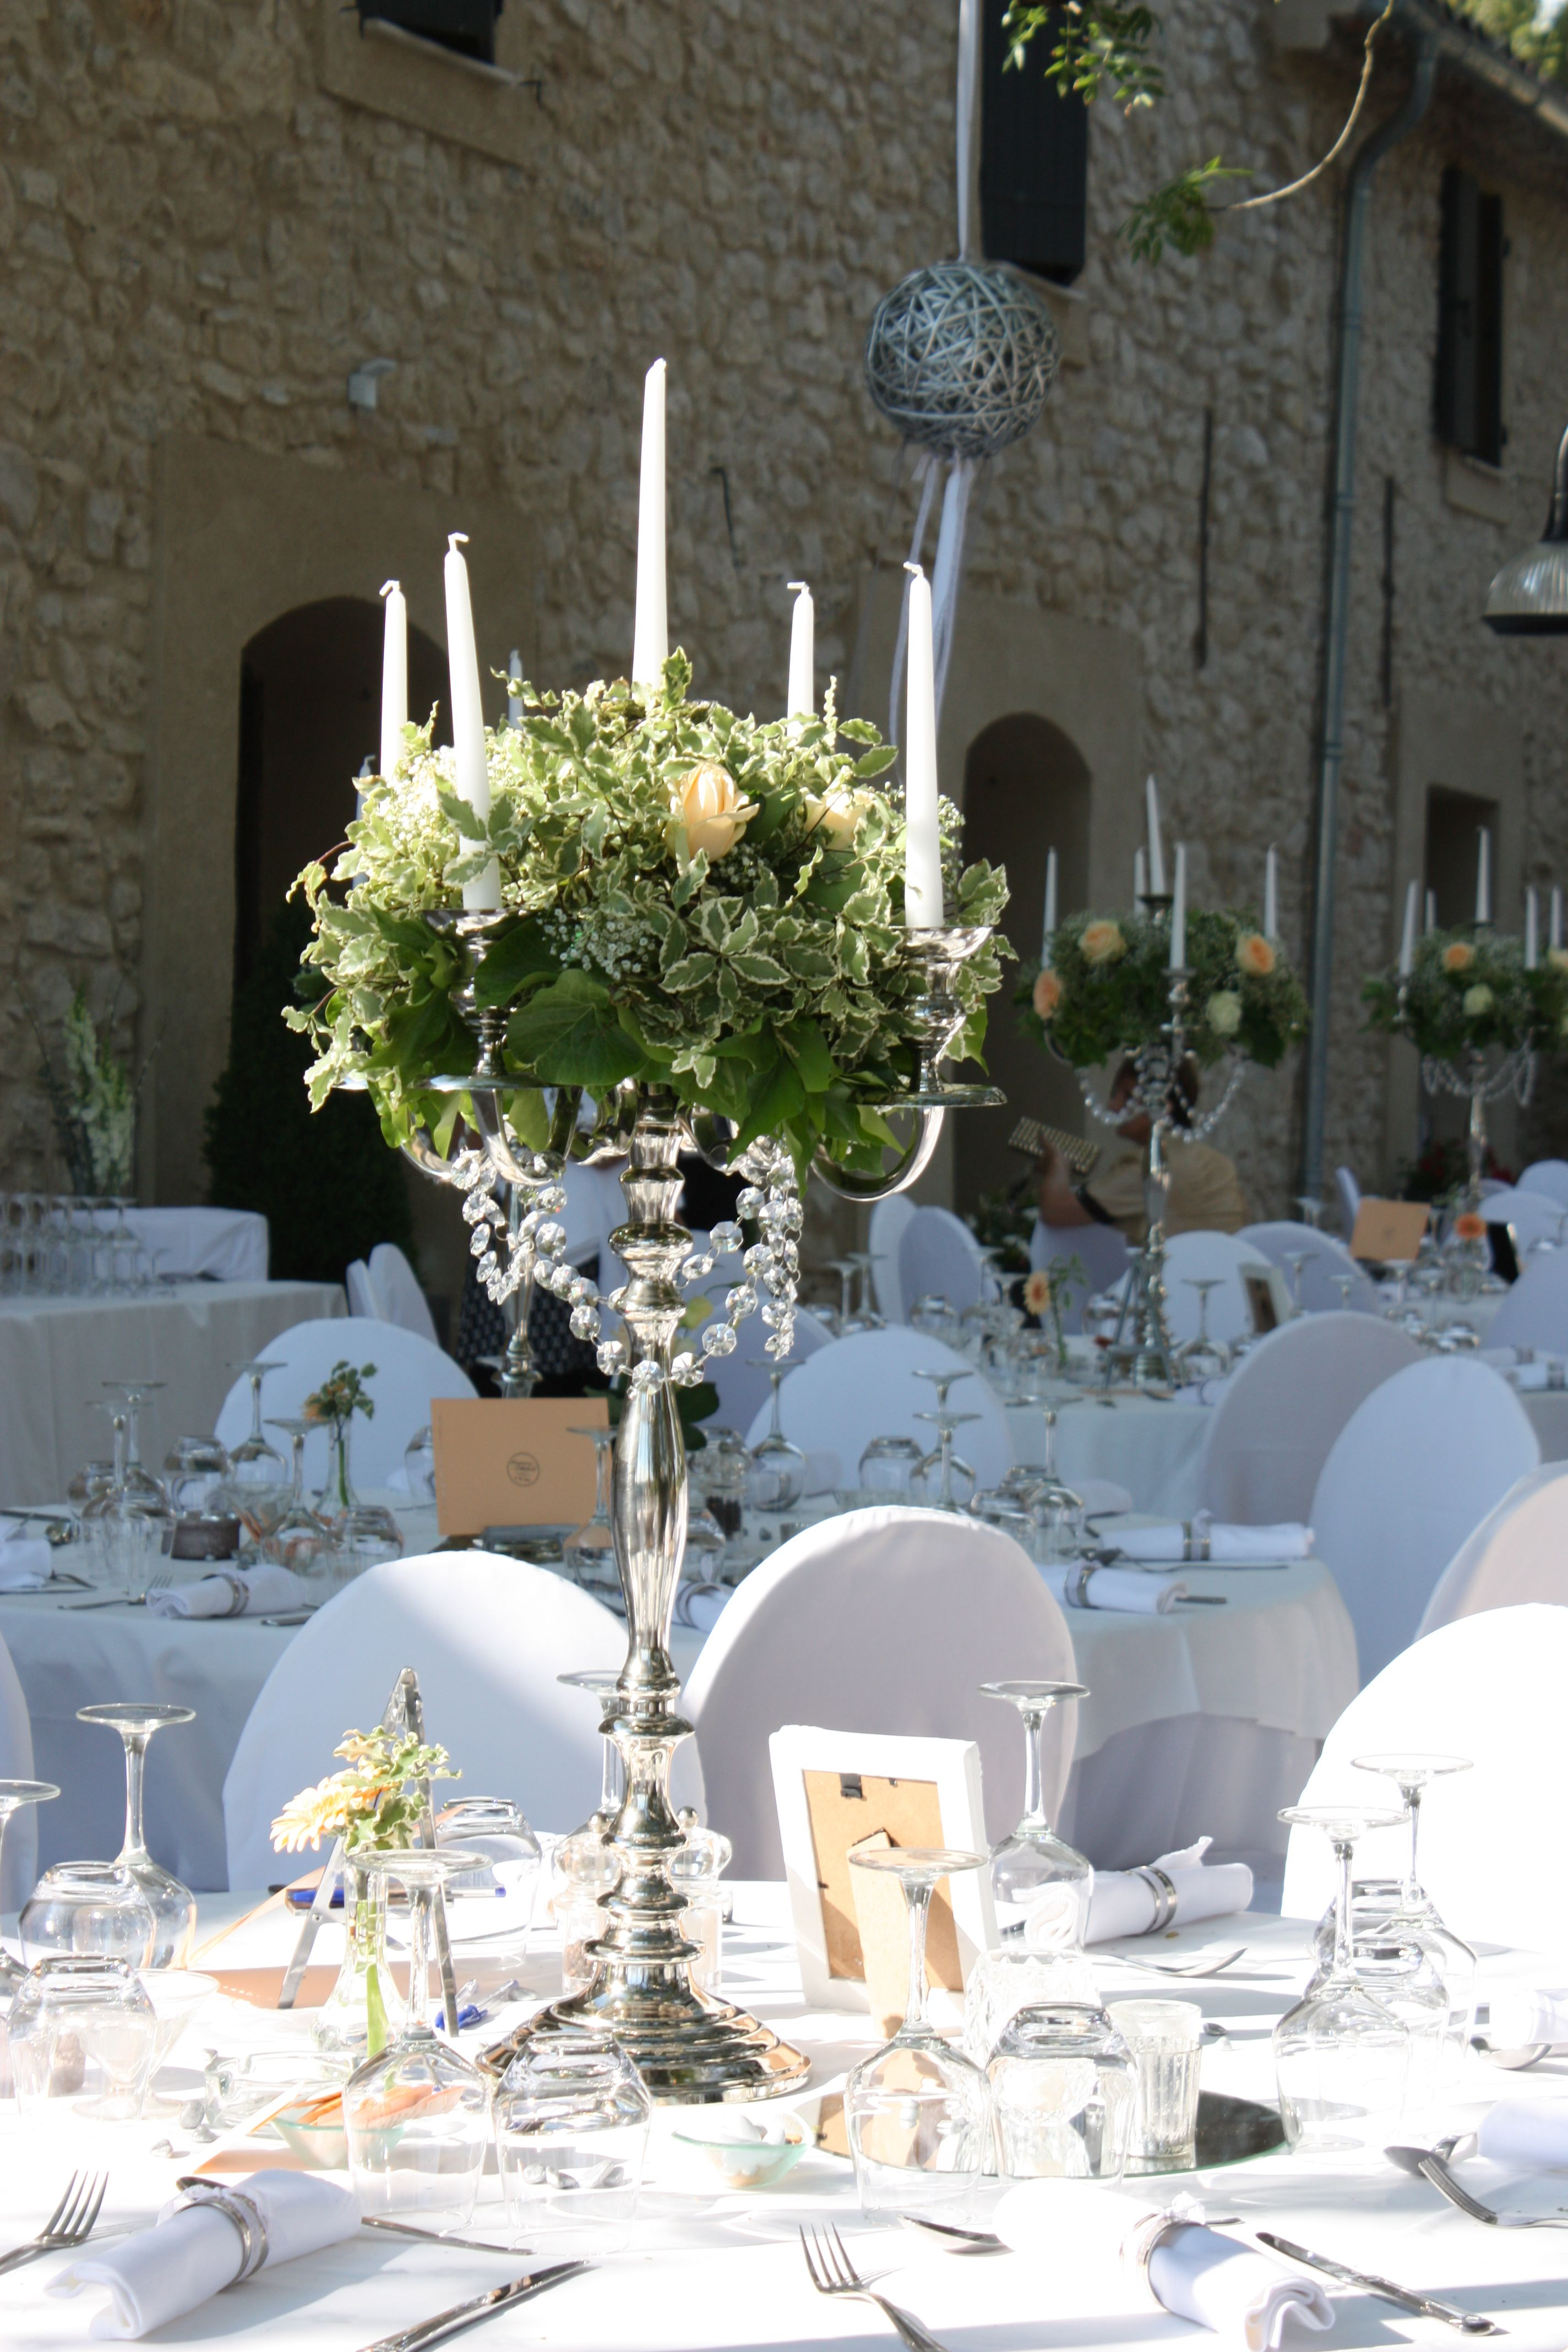 One day event chandelier fleuri vintage blanc et p che d coration de table pinterest - Nom de table mariage champetre ...